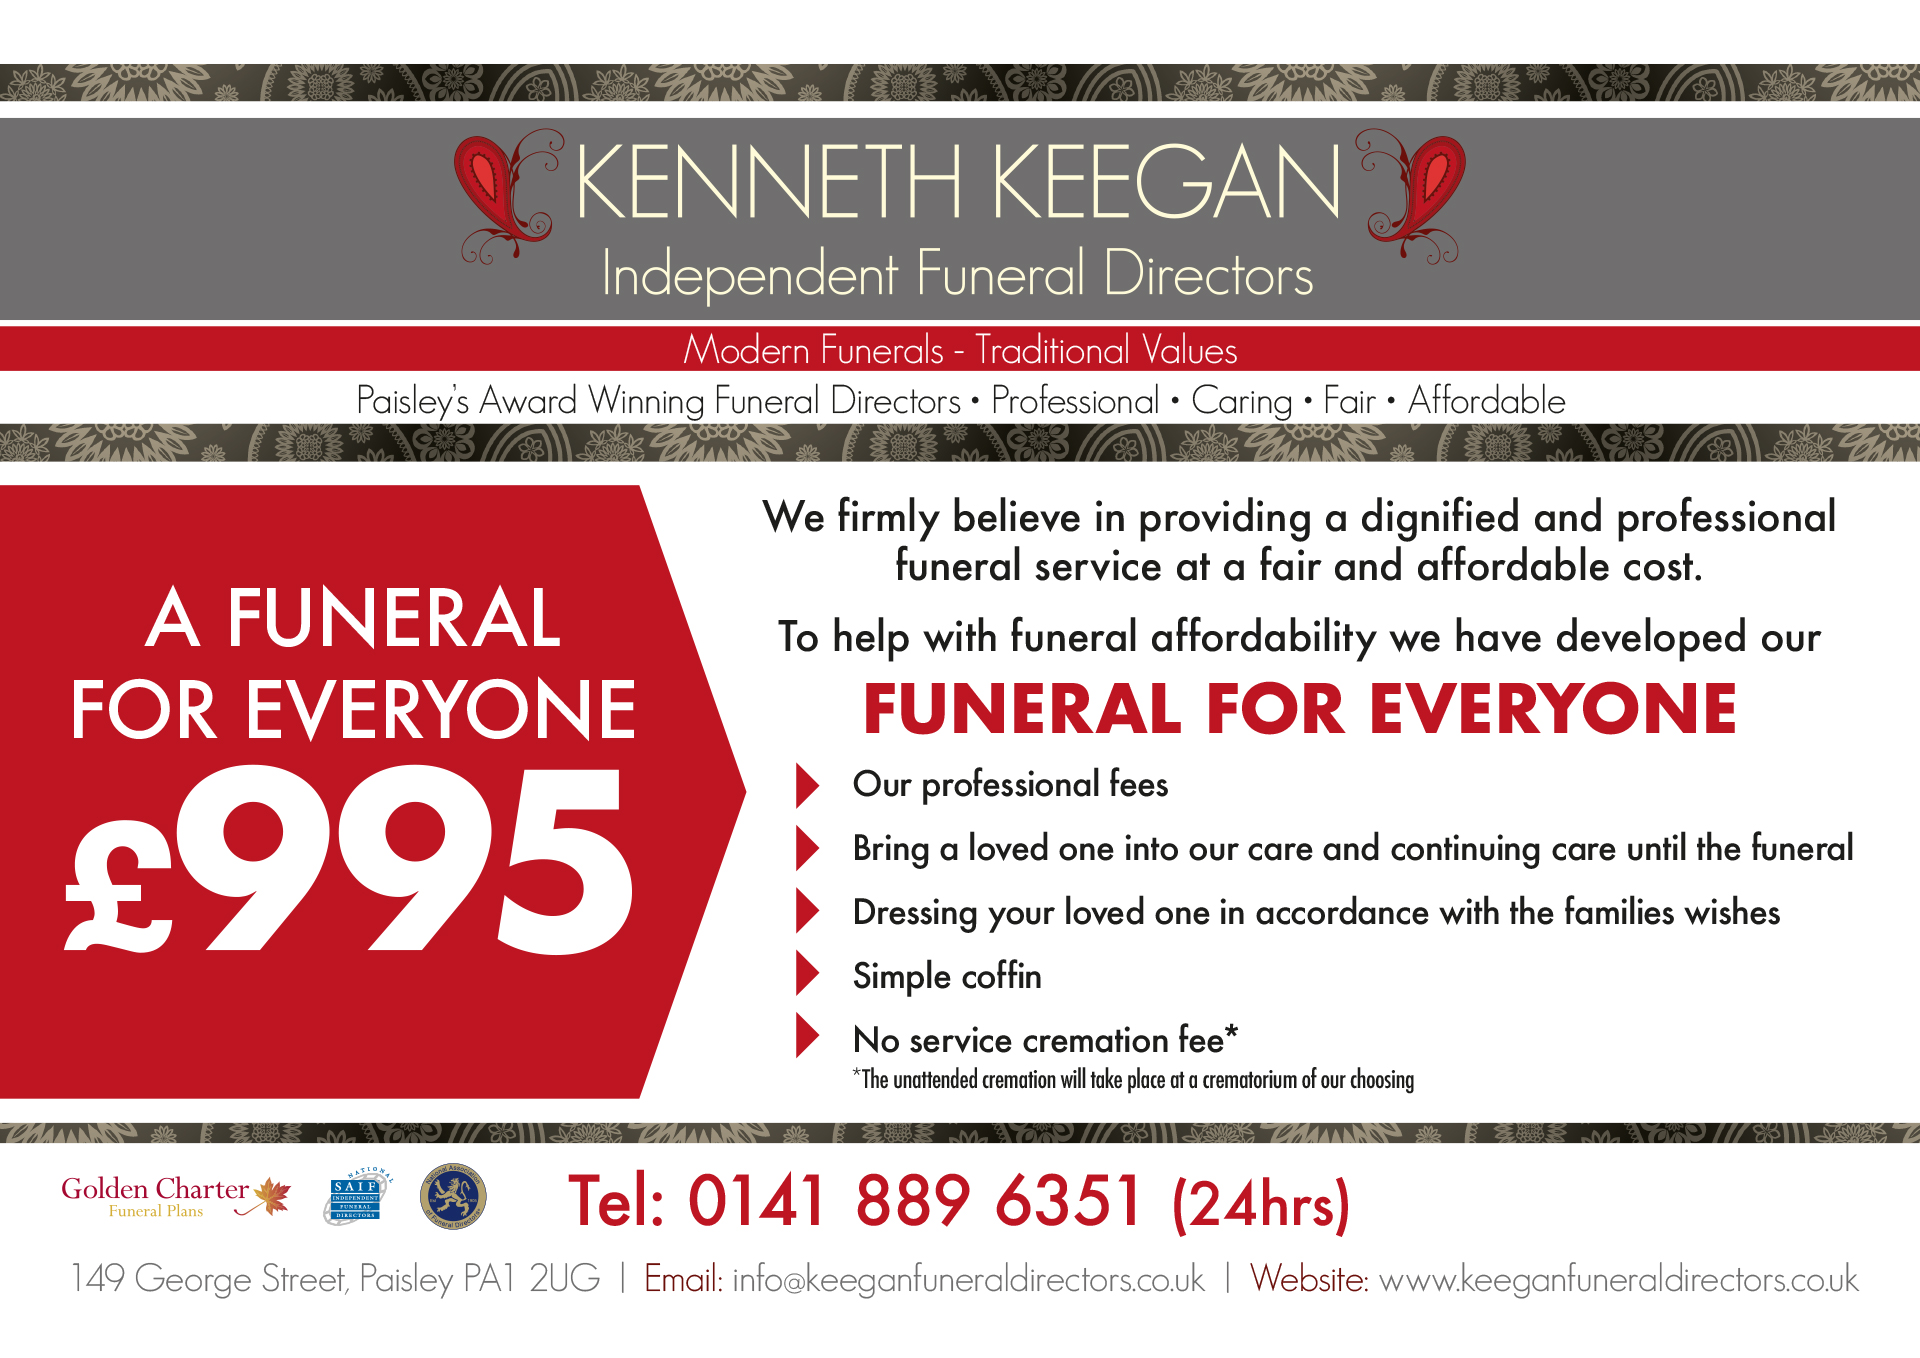 Kenneth-Keegan-A-funeral-for-everyone-A4L-11-10-18